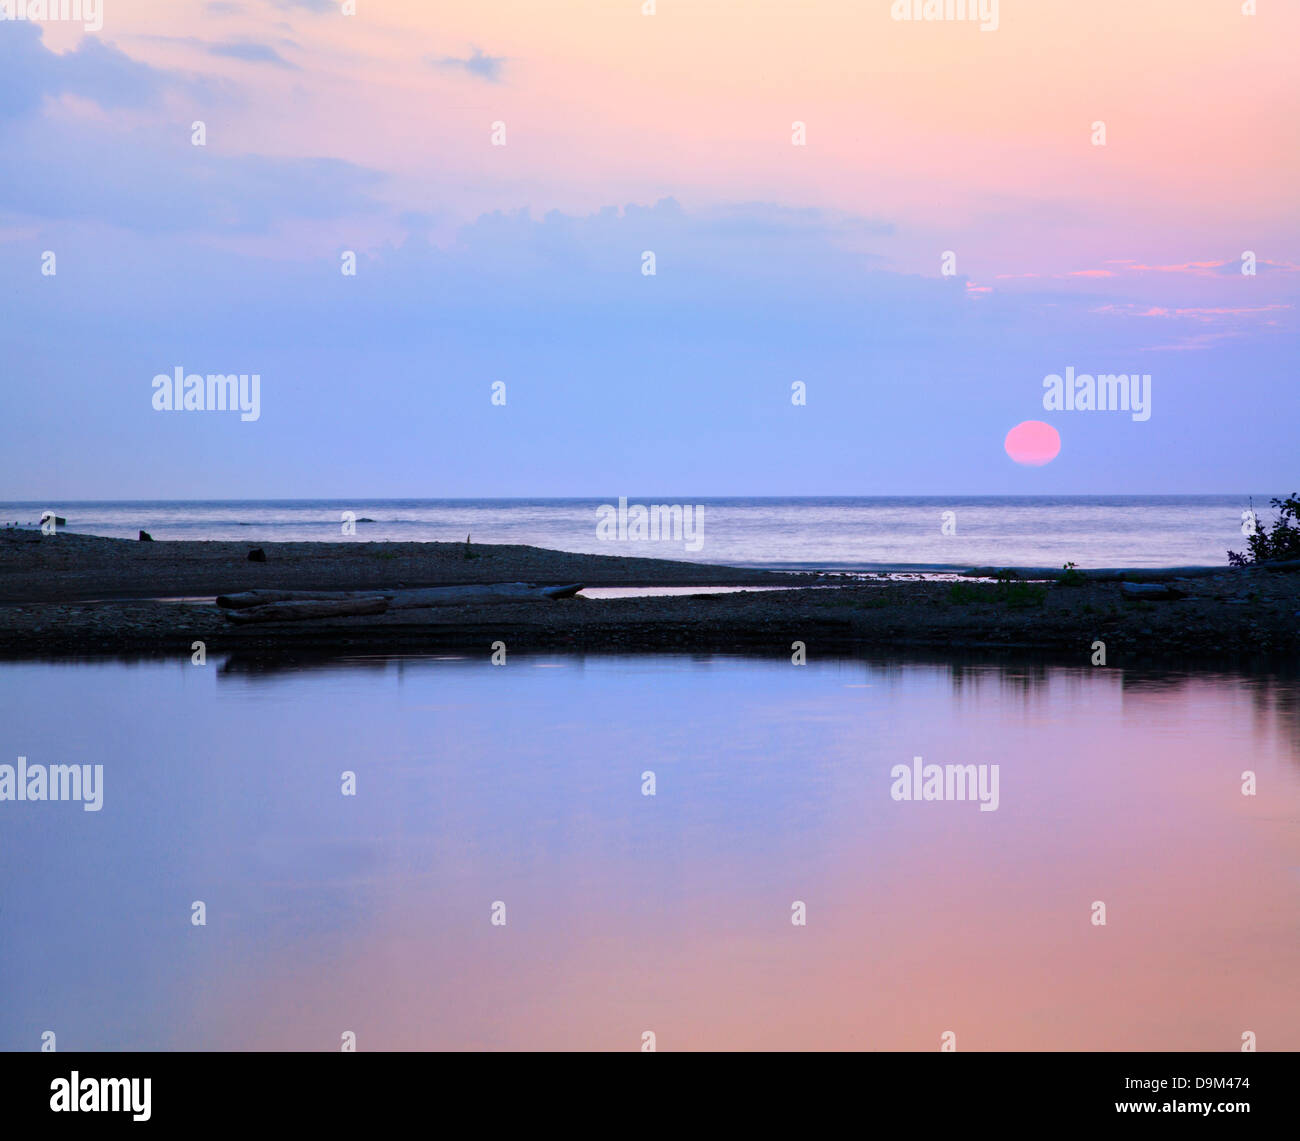 A Colorful Sunset Over Lake Erie At The Mouth Of Elk Creek Near Lake City Pennsylvania, USA - Stock Image